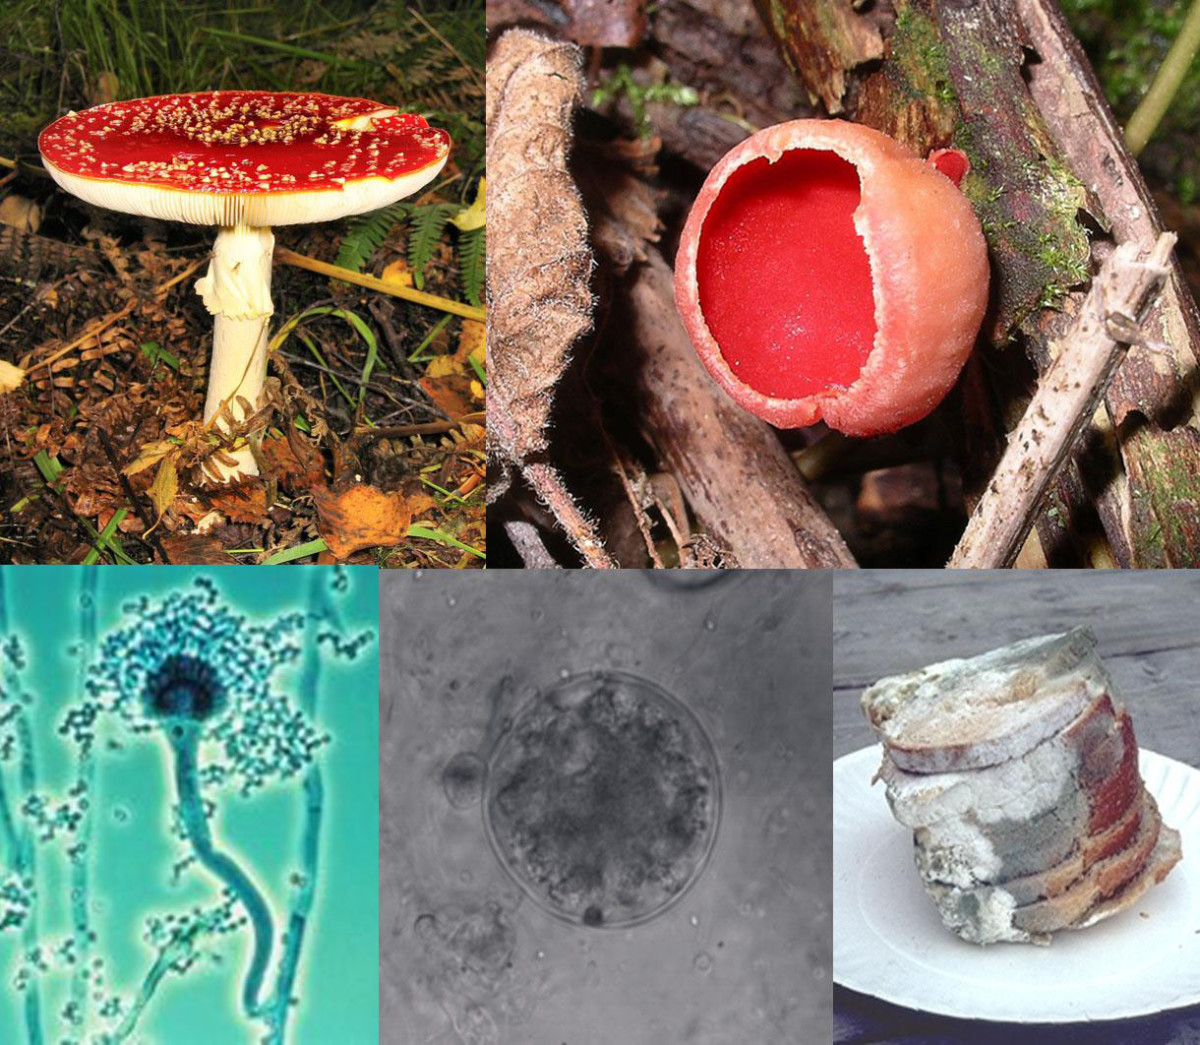 The Amazing World Of Mushrooms And Other Fungi